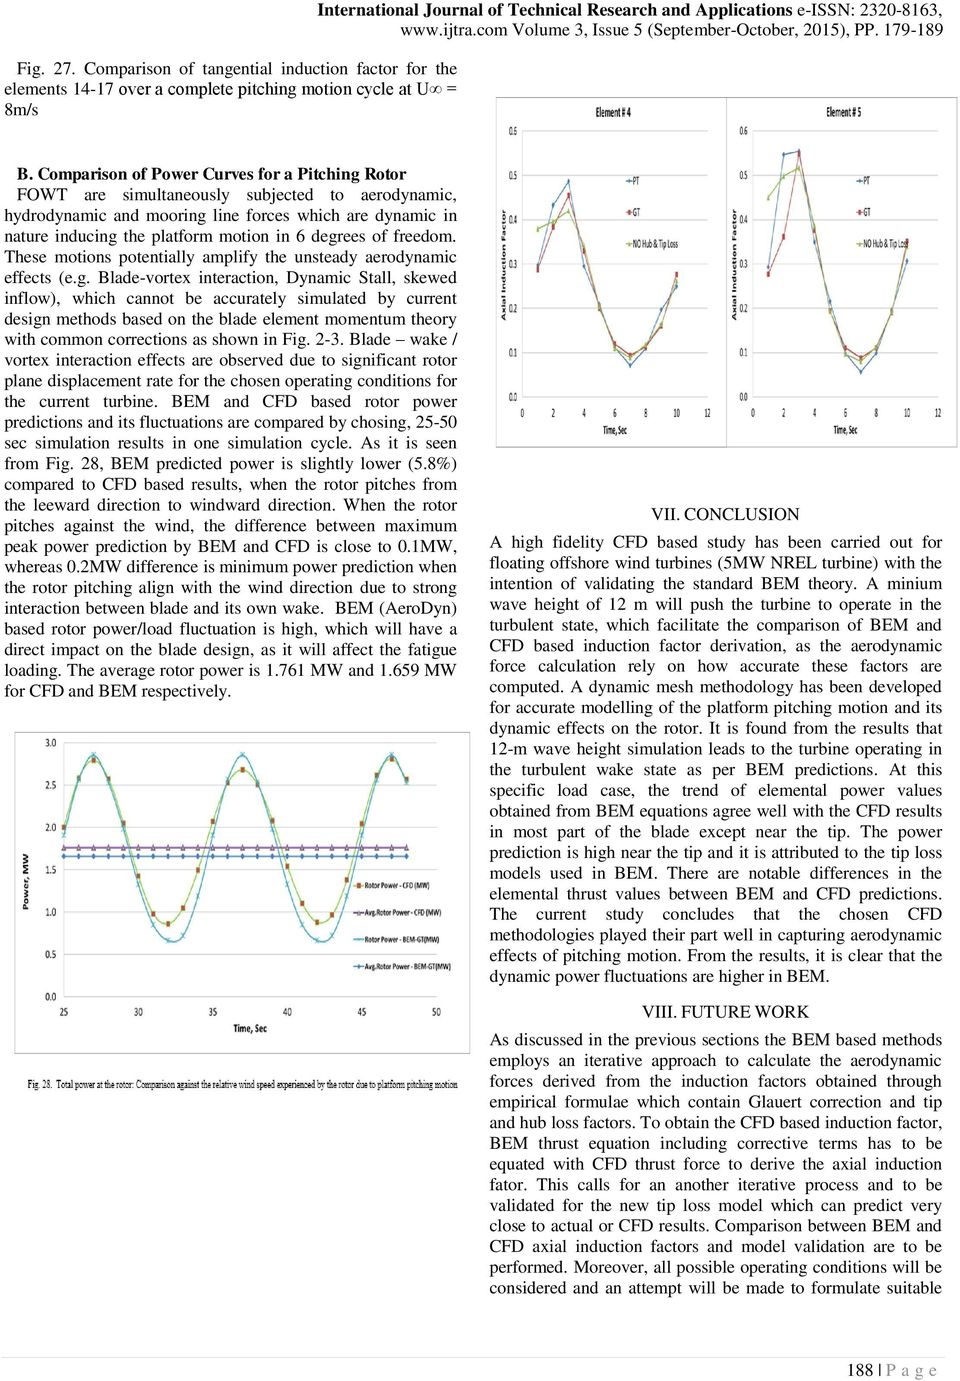 Comparison of Power Curves for a Pitching Rotor FOWT are simultaneously subjected to aerodynamic, hydrodynamic and mooring line forces which are dynamic in nature inducing the platform motion in 6